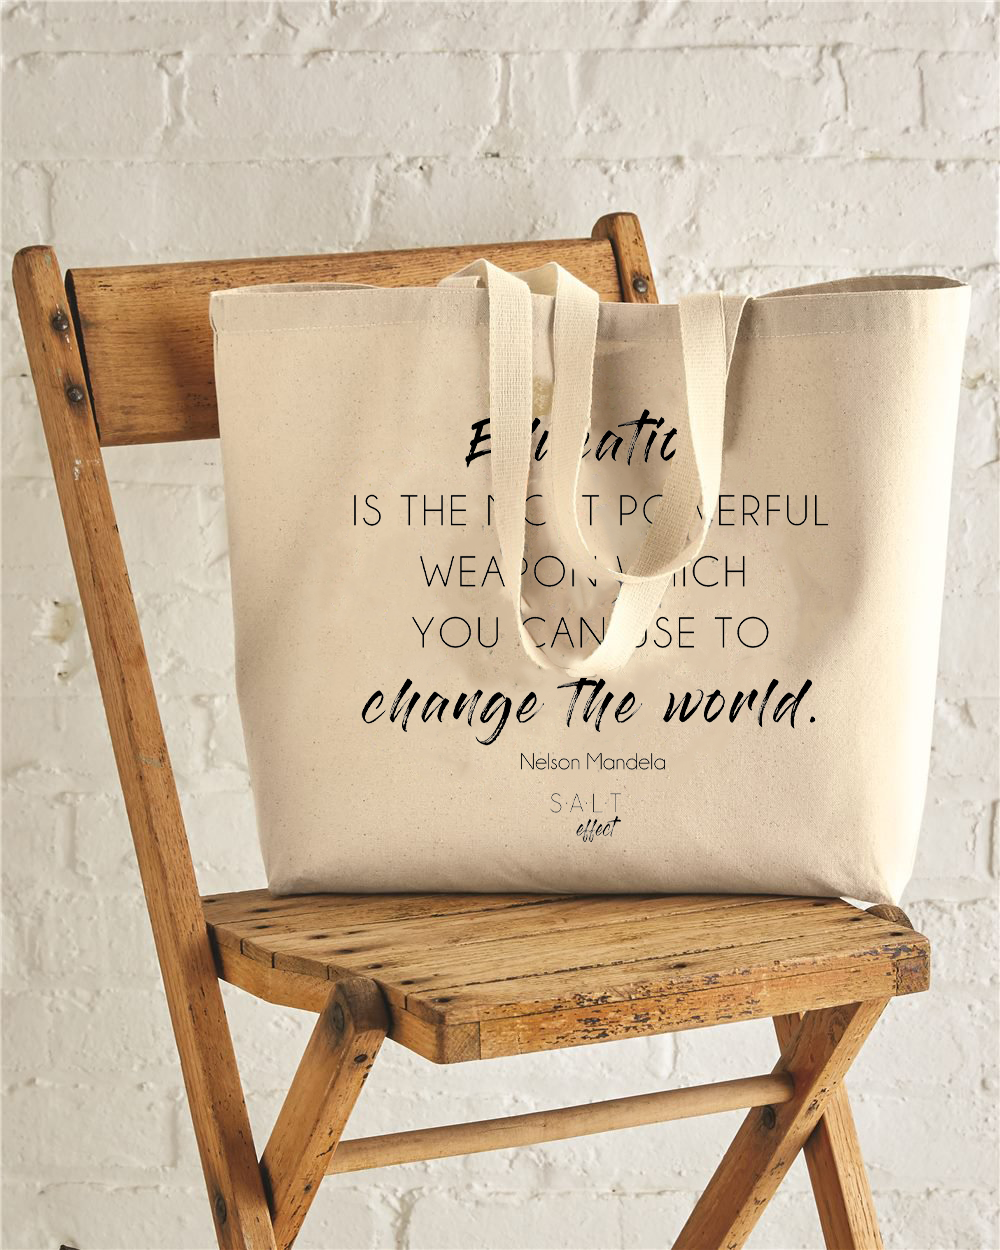 Education Changes The World Jumbo Cotton Canvas Tote Bag